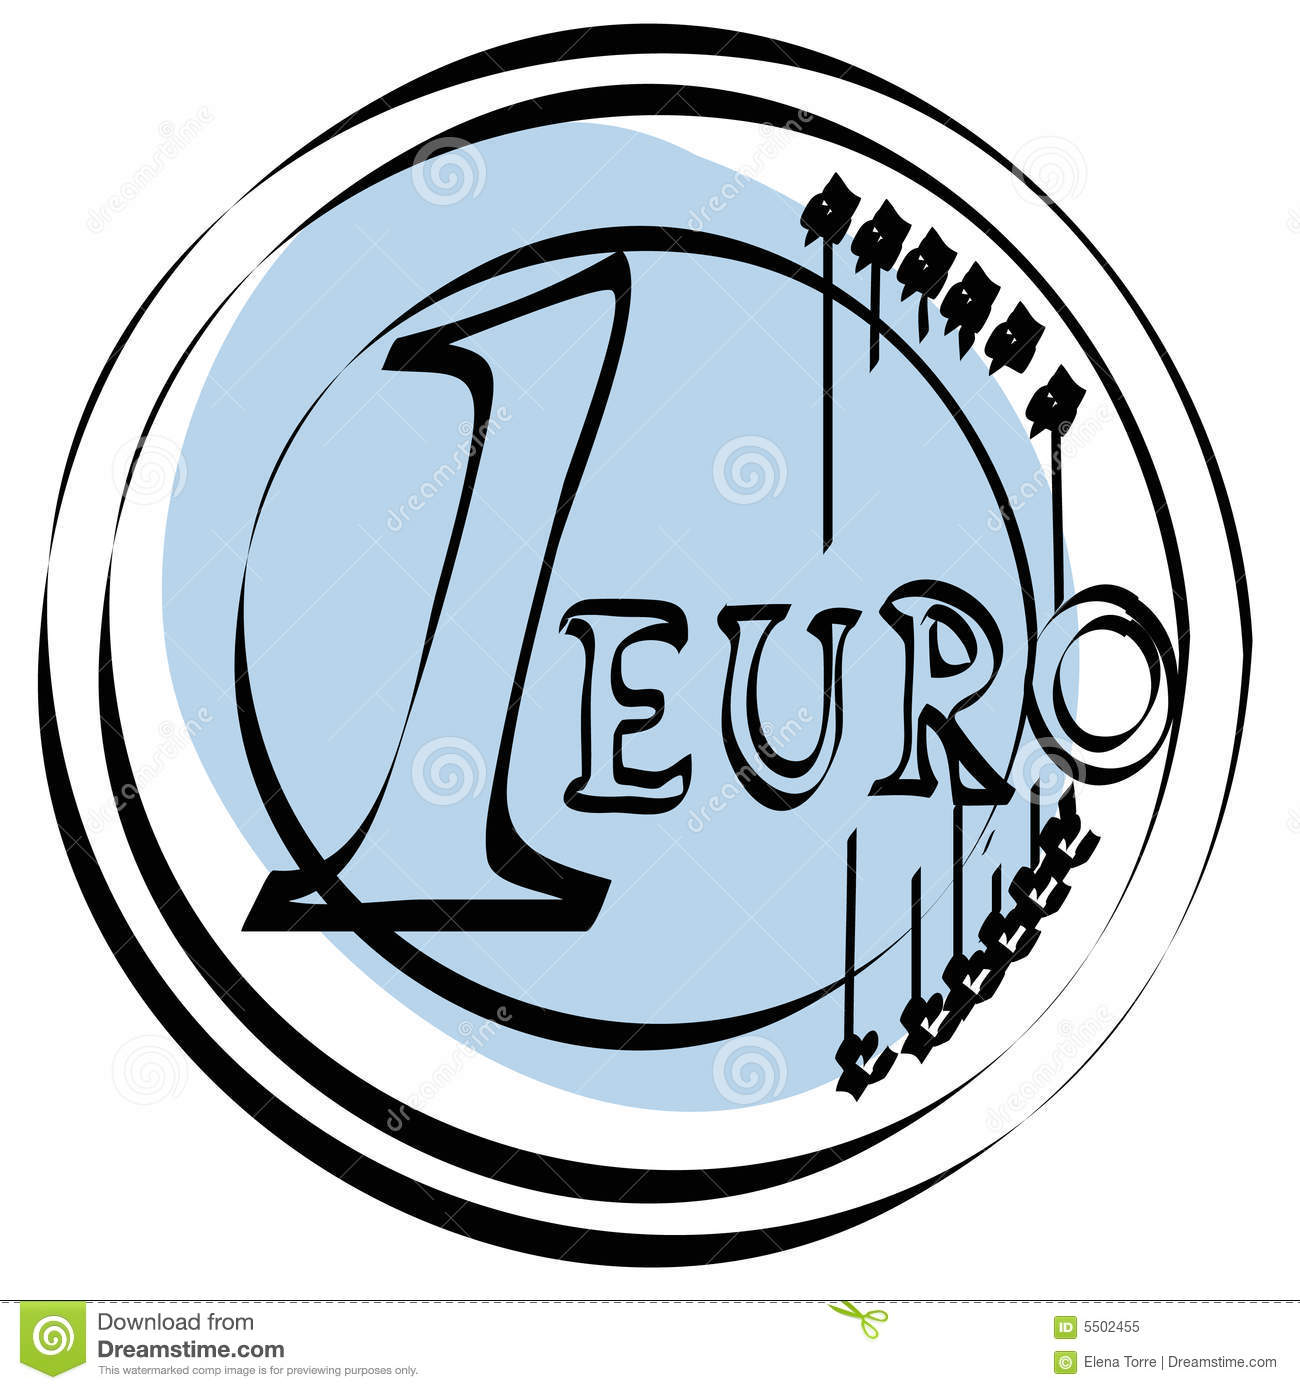 Eps euro file vector